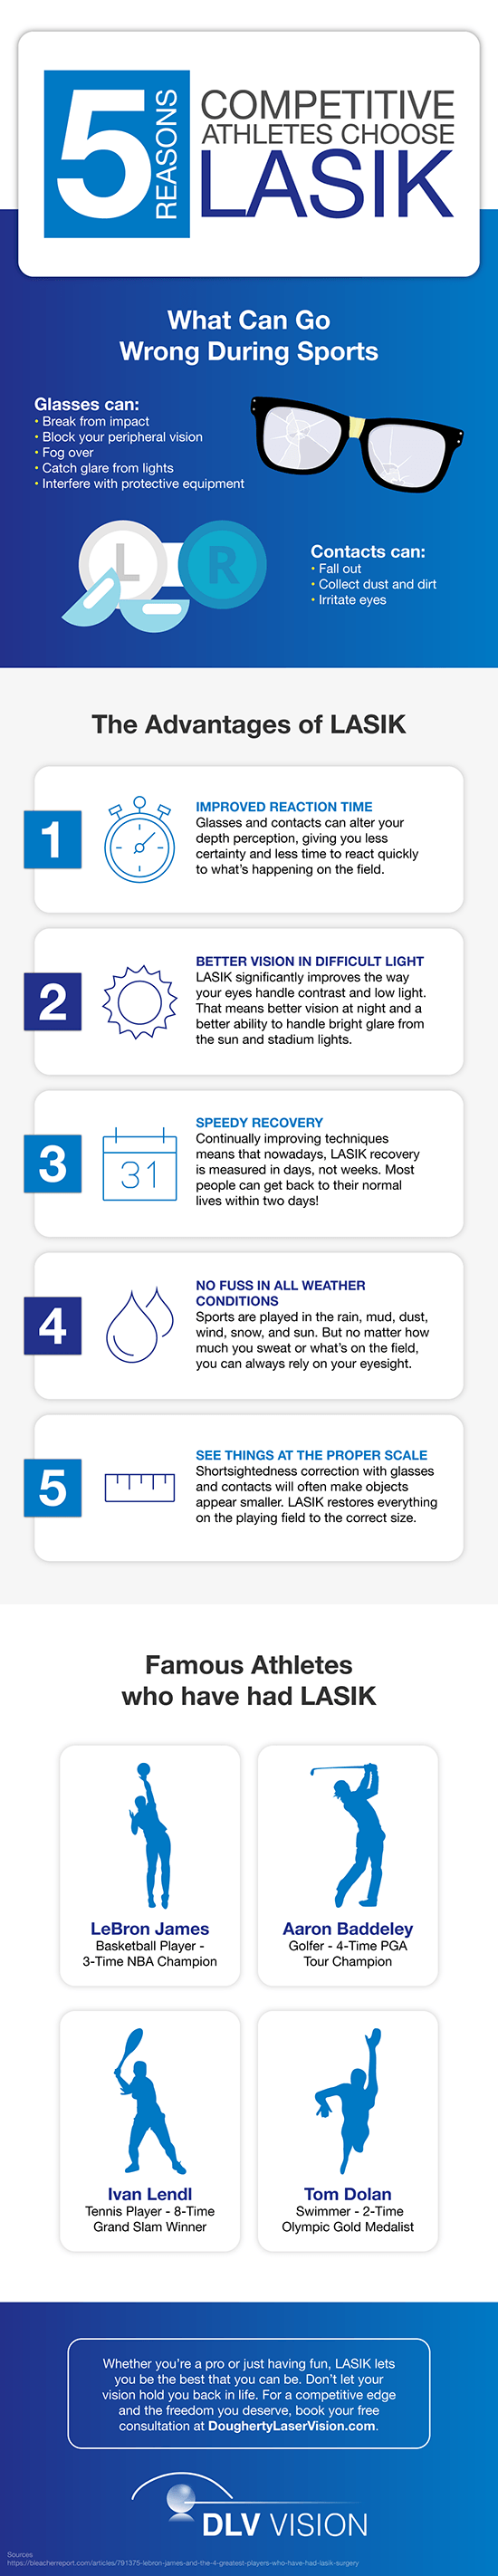 5 Reasons competitive athletes choose lasik infographic